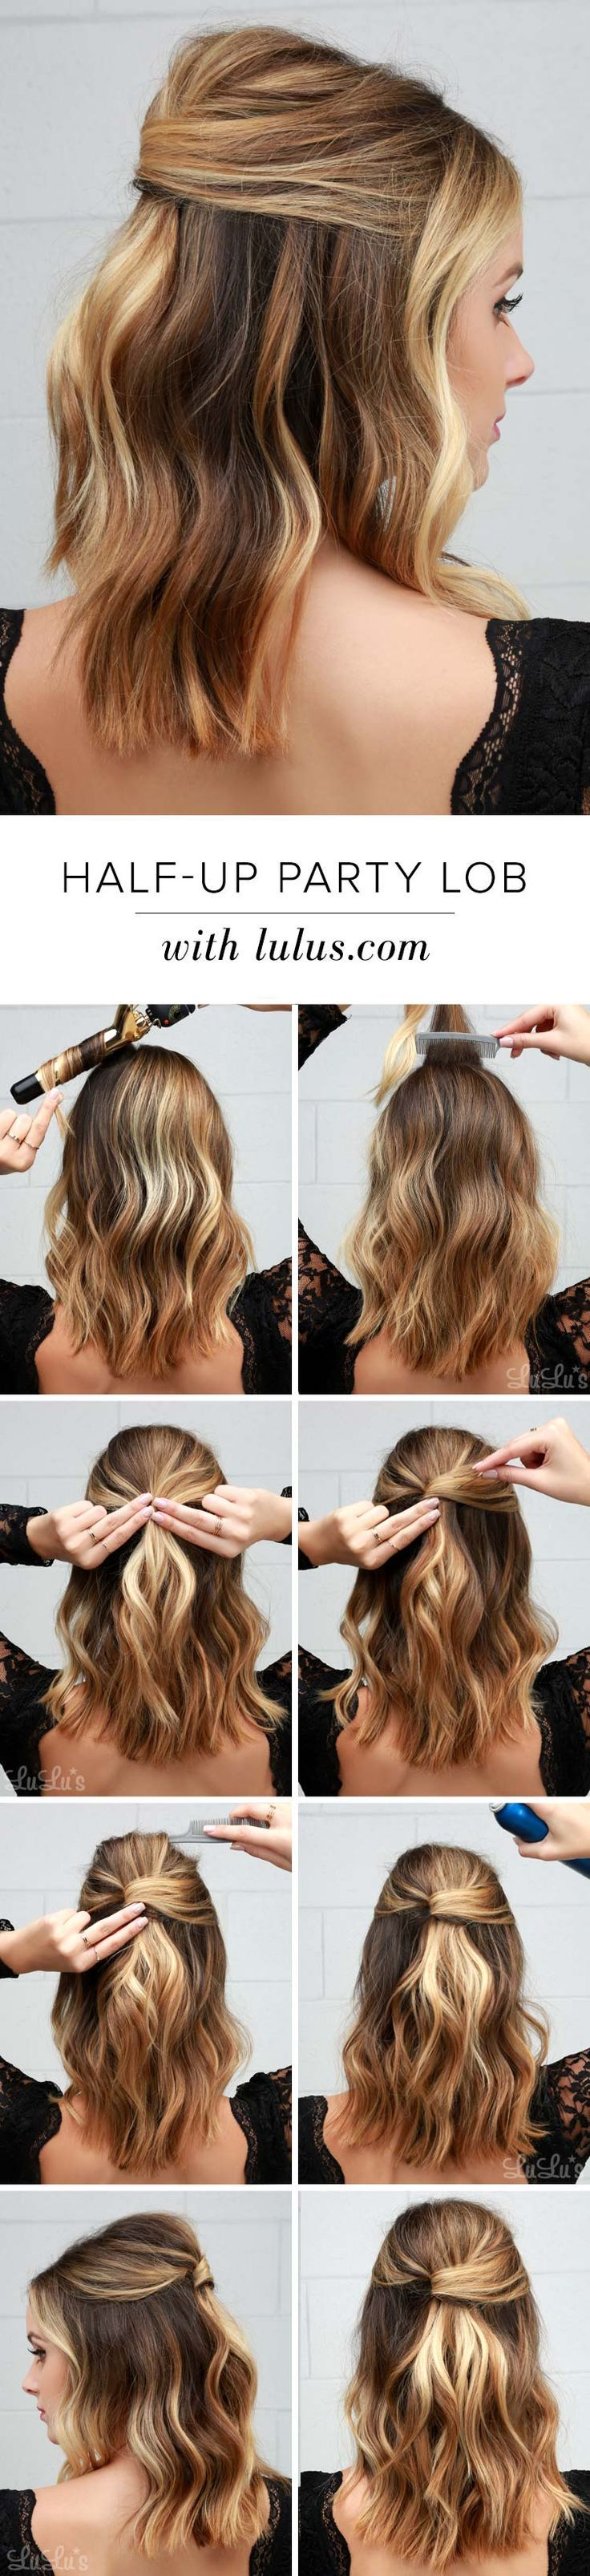 Lulus How To Half Up Party Lob Lulus Com Fashion Blog Hair Styles Long Hair Styles Diy Hairstyles Easy